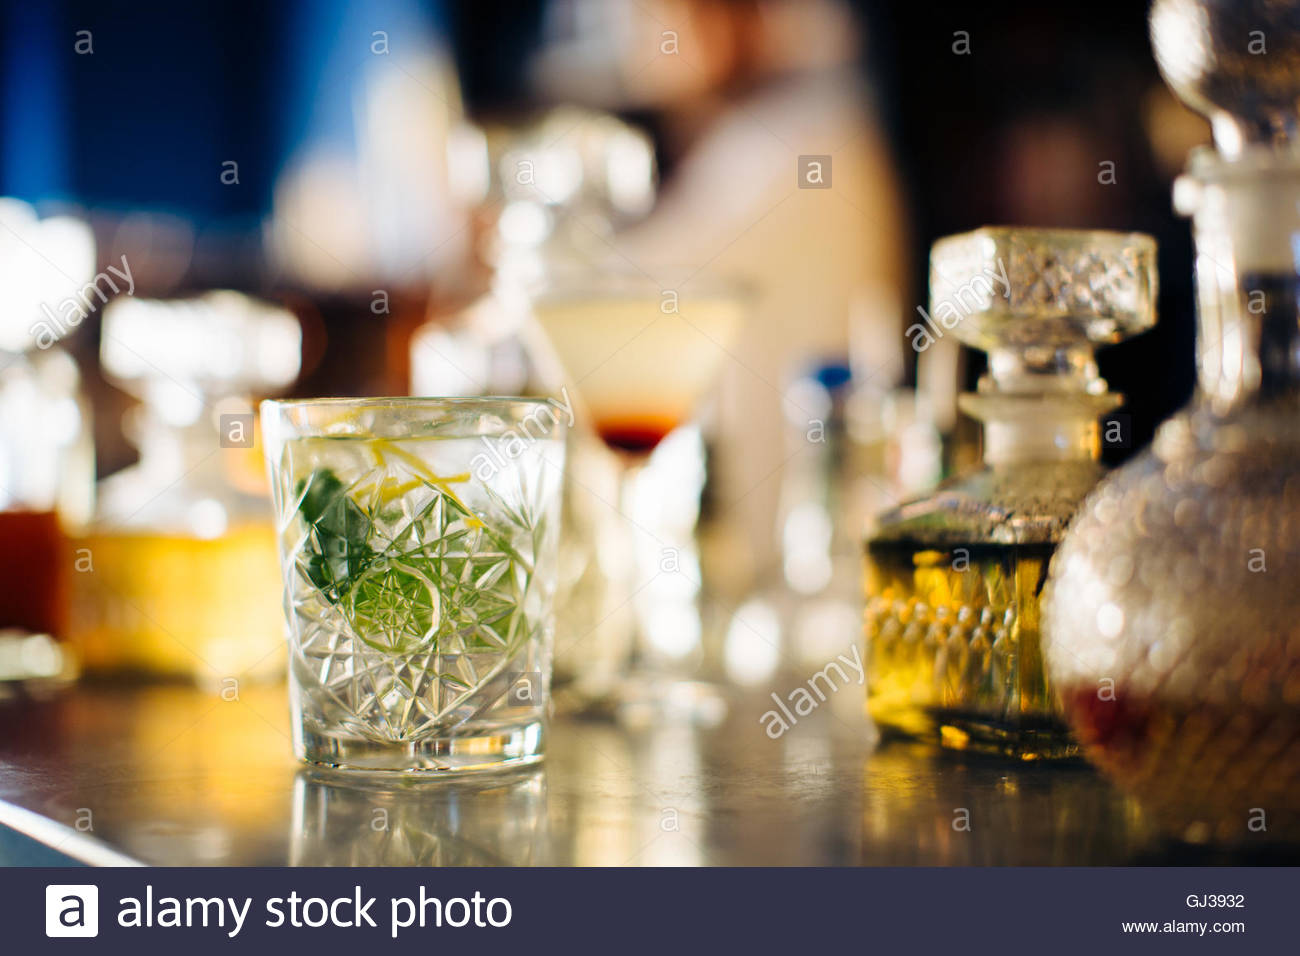 Drink on vintage cocktail bar counter, Florence, Italy - Stock Image